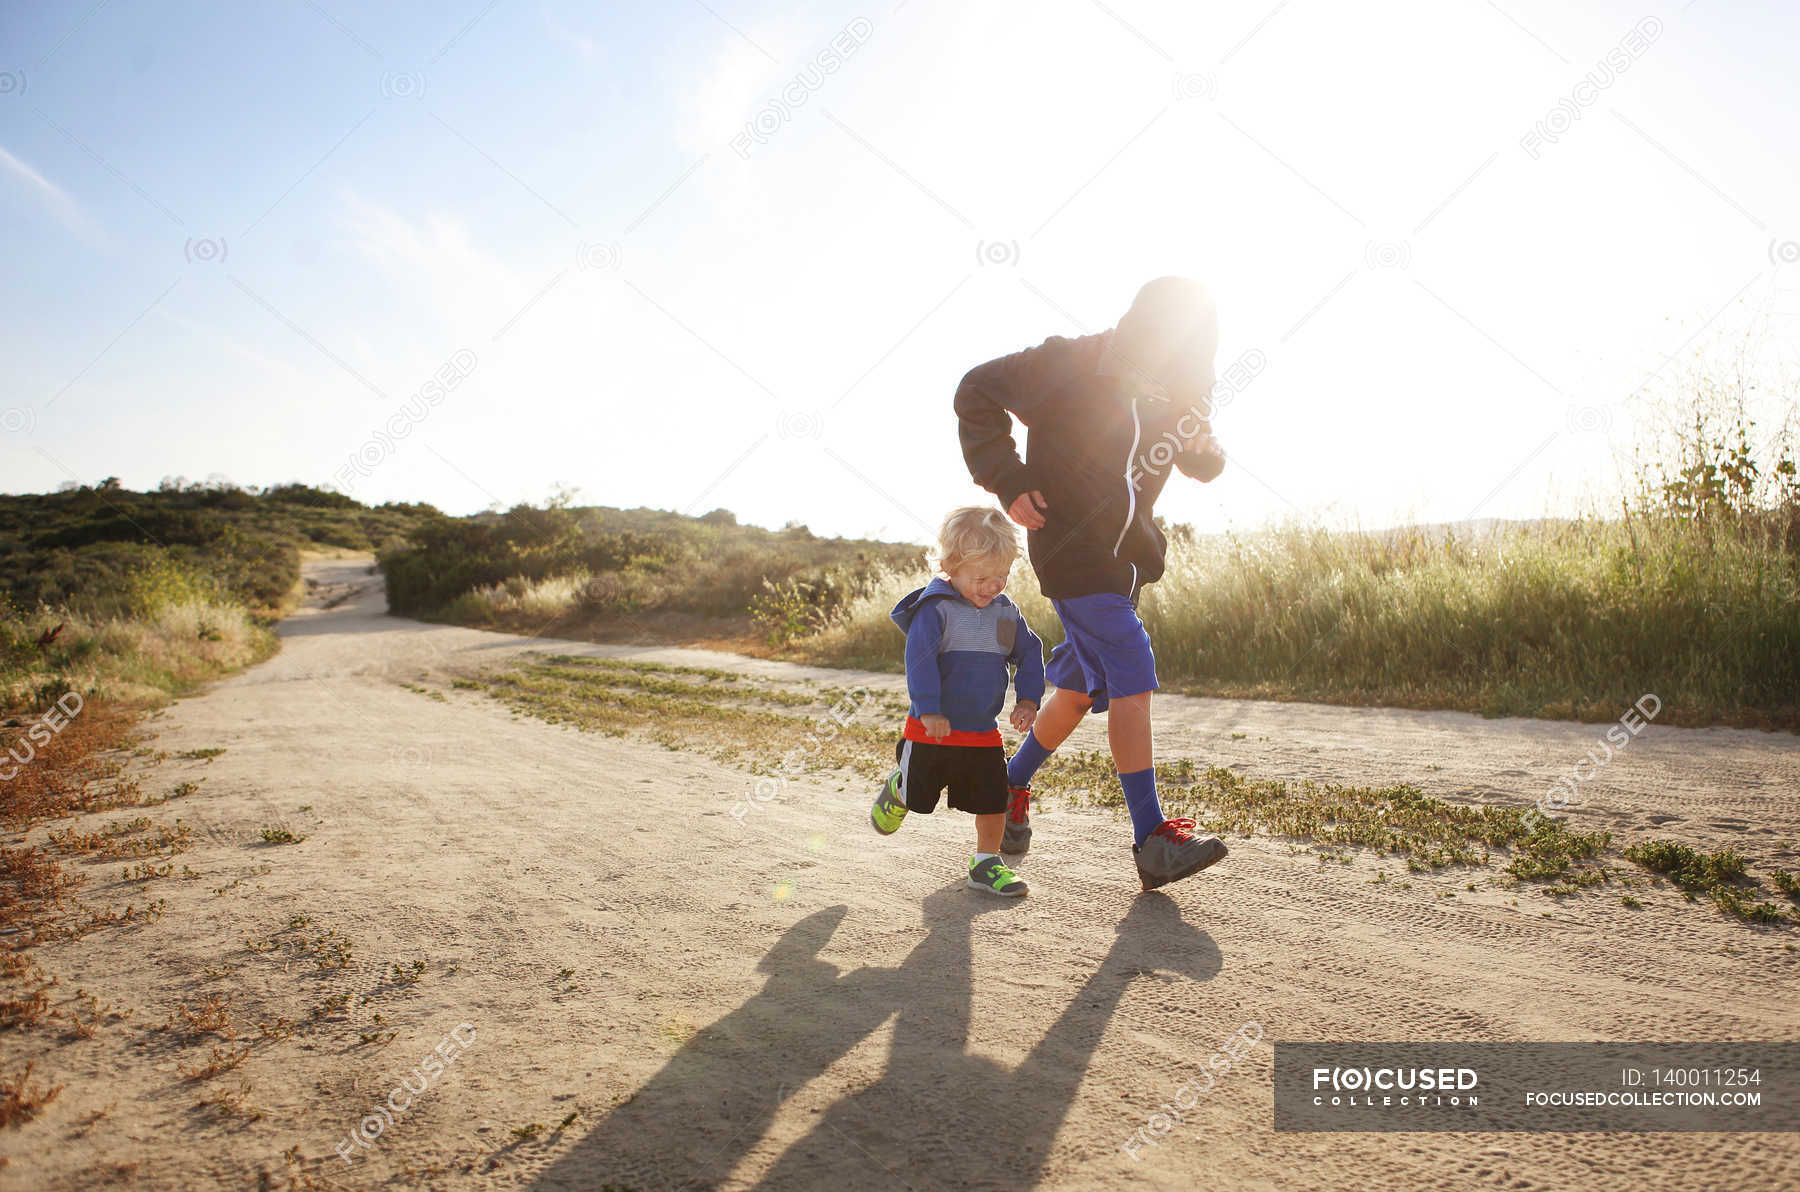 Chasing - Stock Photos, Royalty Free Images | Focused